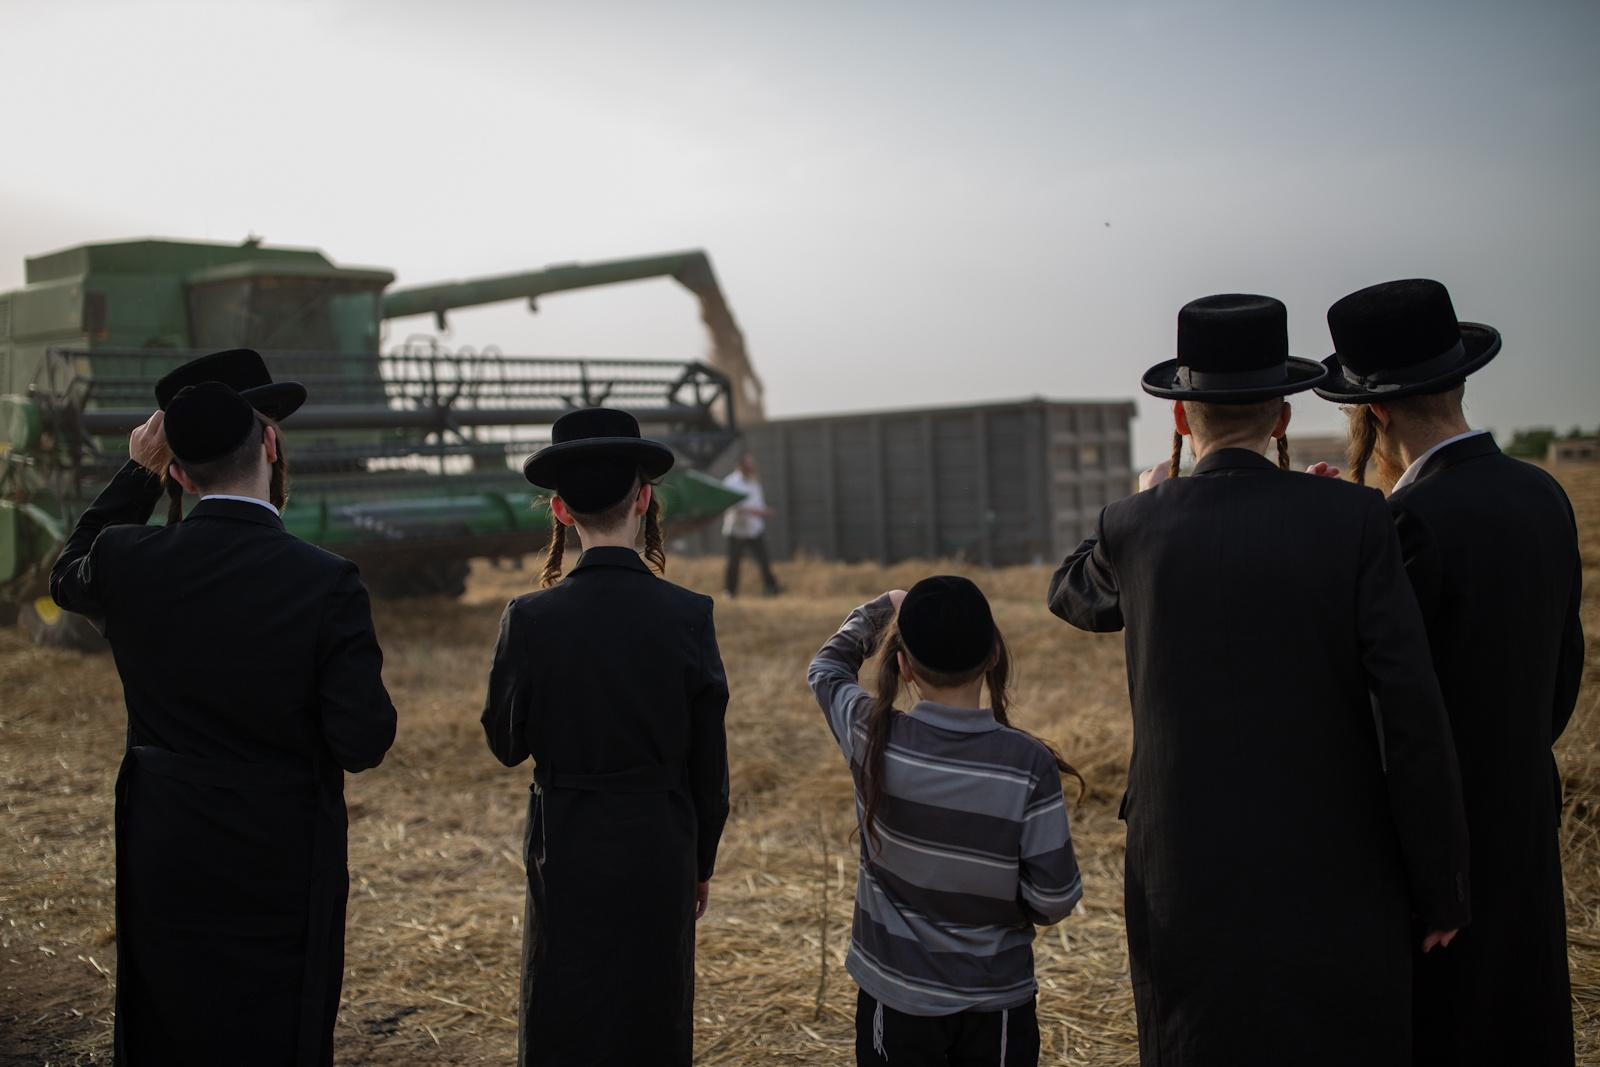 KOMEMIYUT, ISRAEL - MAY 03, 2016: Ultra-Orthodox Jews watch a harvester in a field in the Ultra-orthodox moshav of Komemiyut, May 3, 2016. According to a Jewish tradition the harvested wheat will be stored for almost a year and then used to grind flour to make unleavened bread for the week-long Passover holiday.